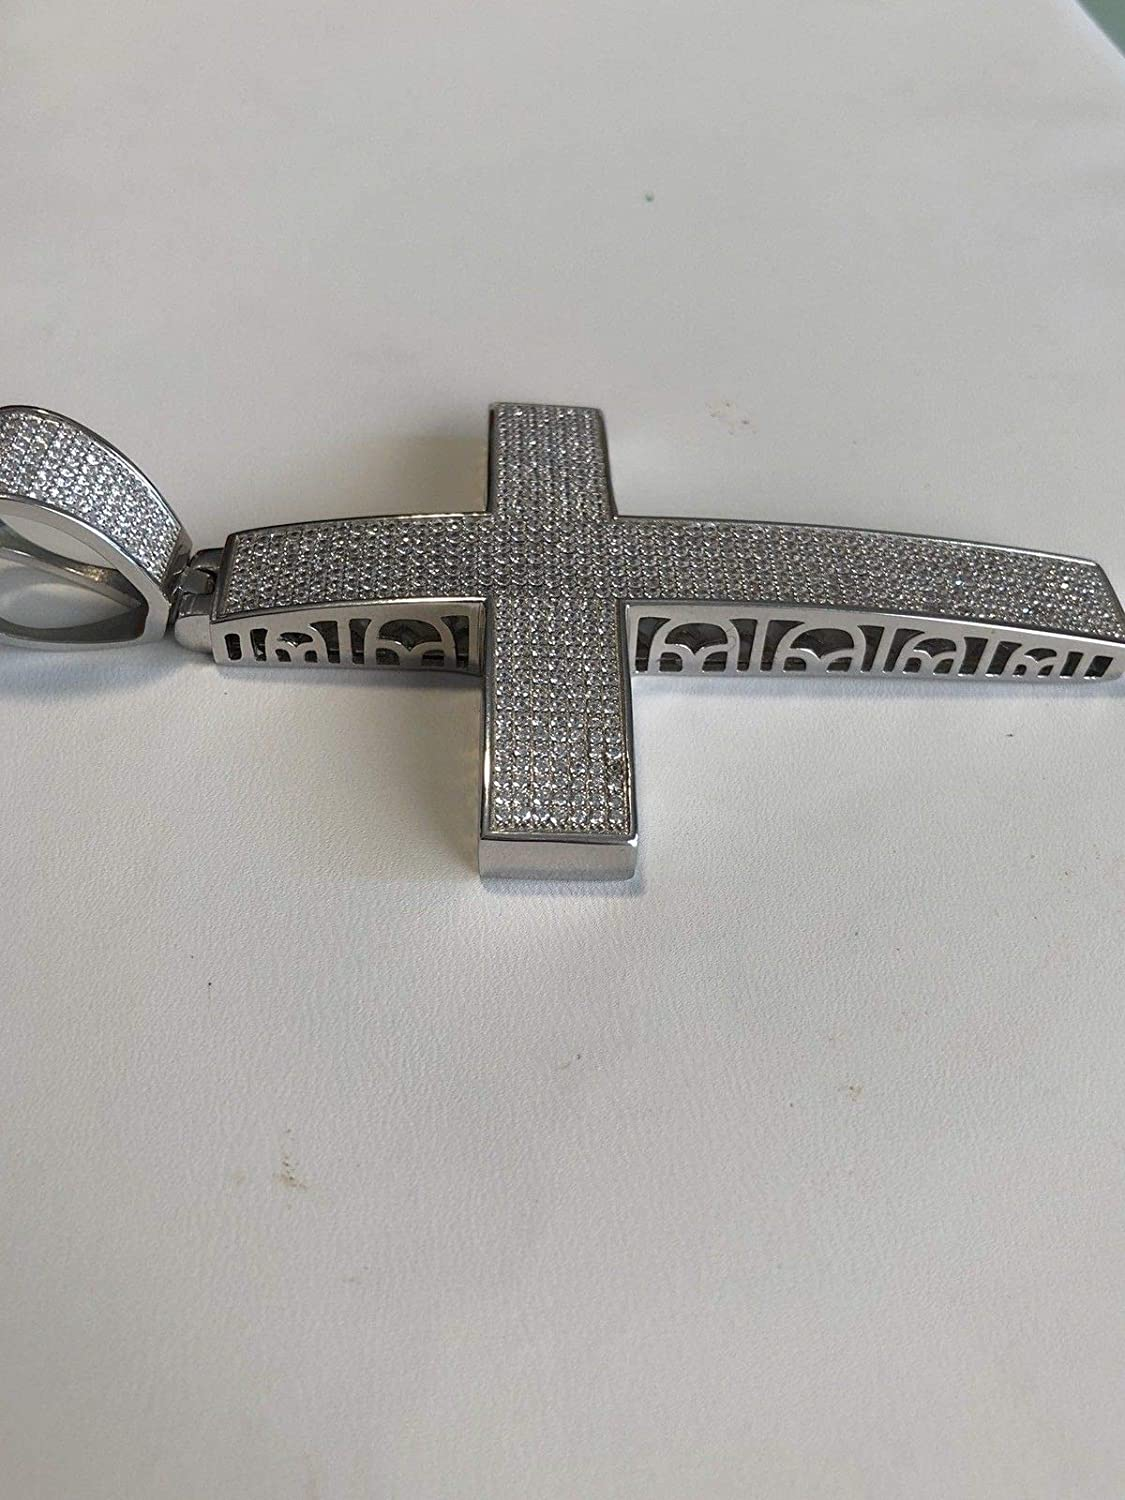 Large 2x4 44 Grams Mens Fits Up to 14mm Chains! Harlembling Solid 925 Sterling Silver Iced Out Cross Pendant